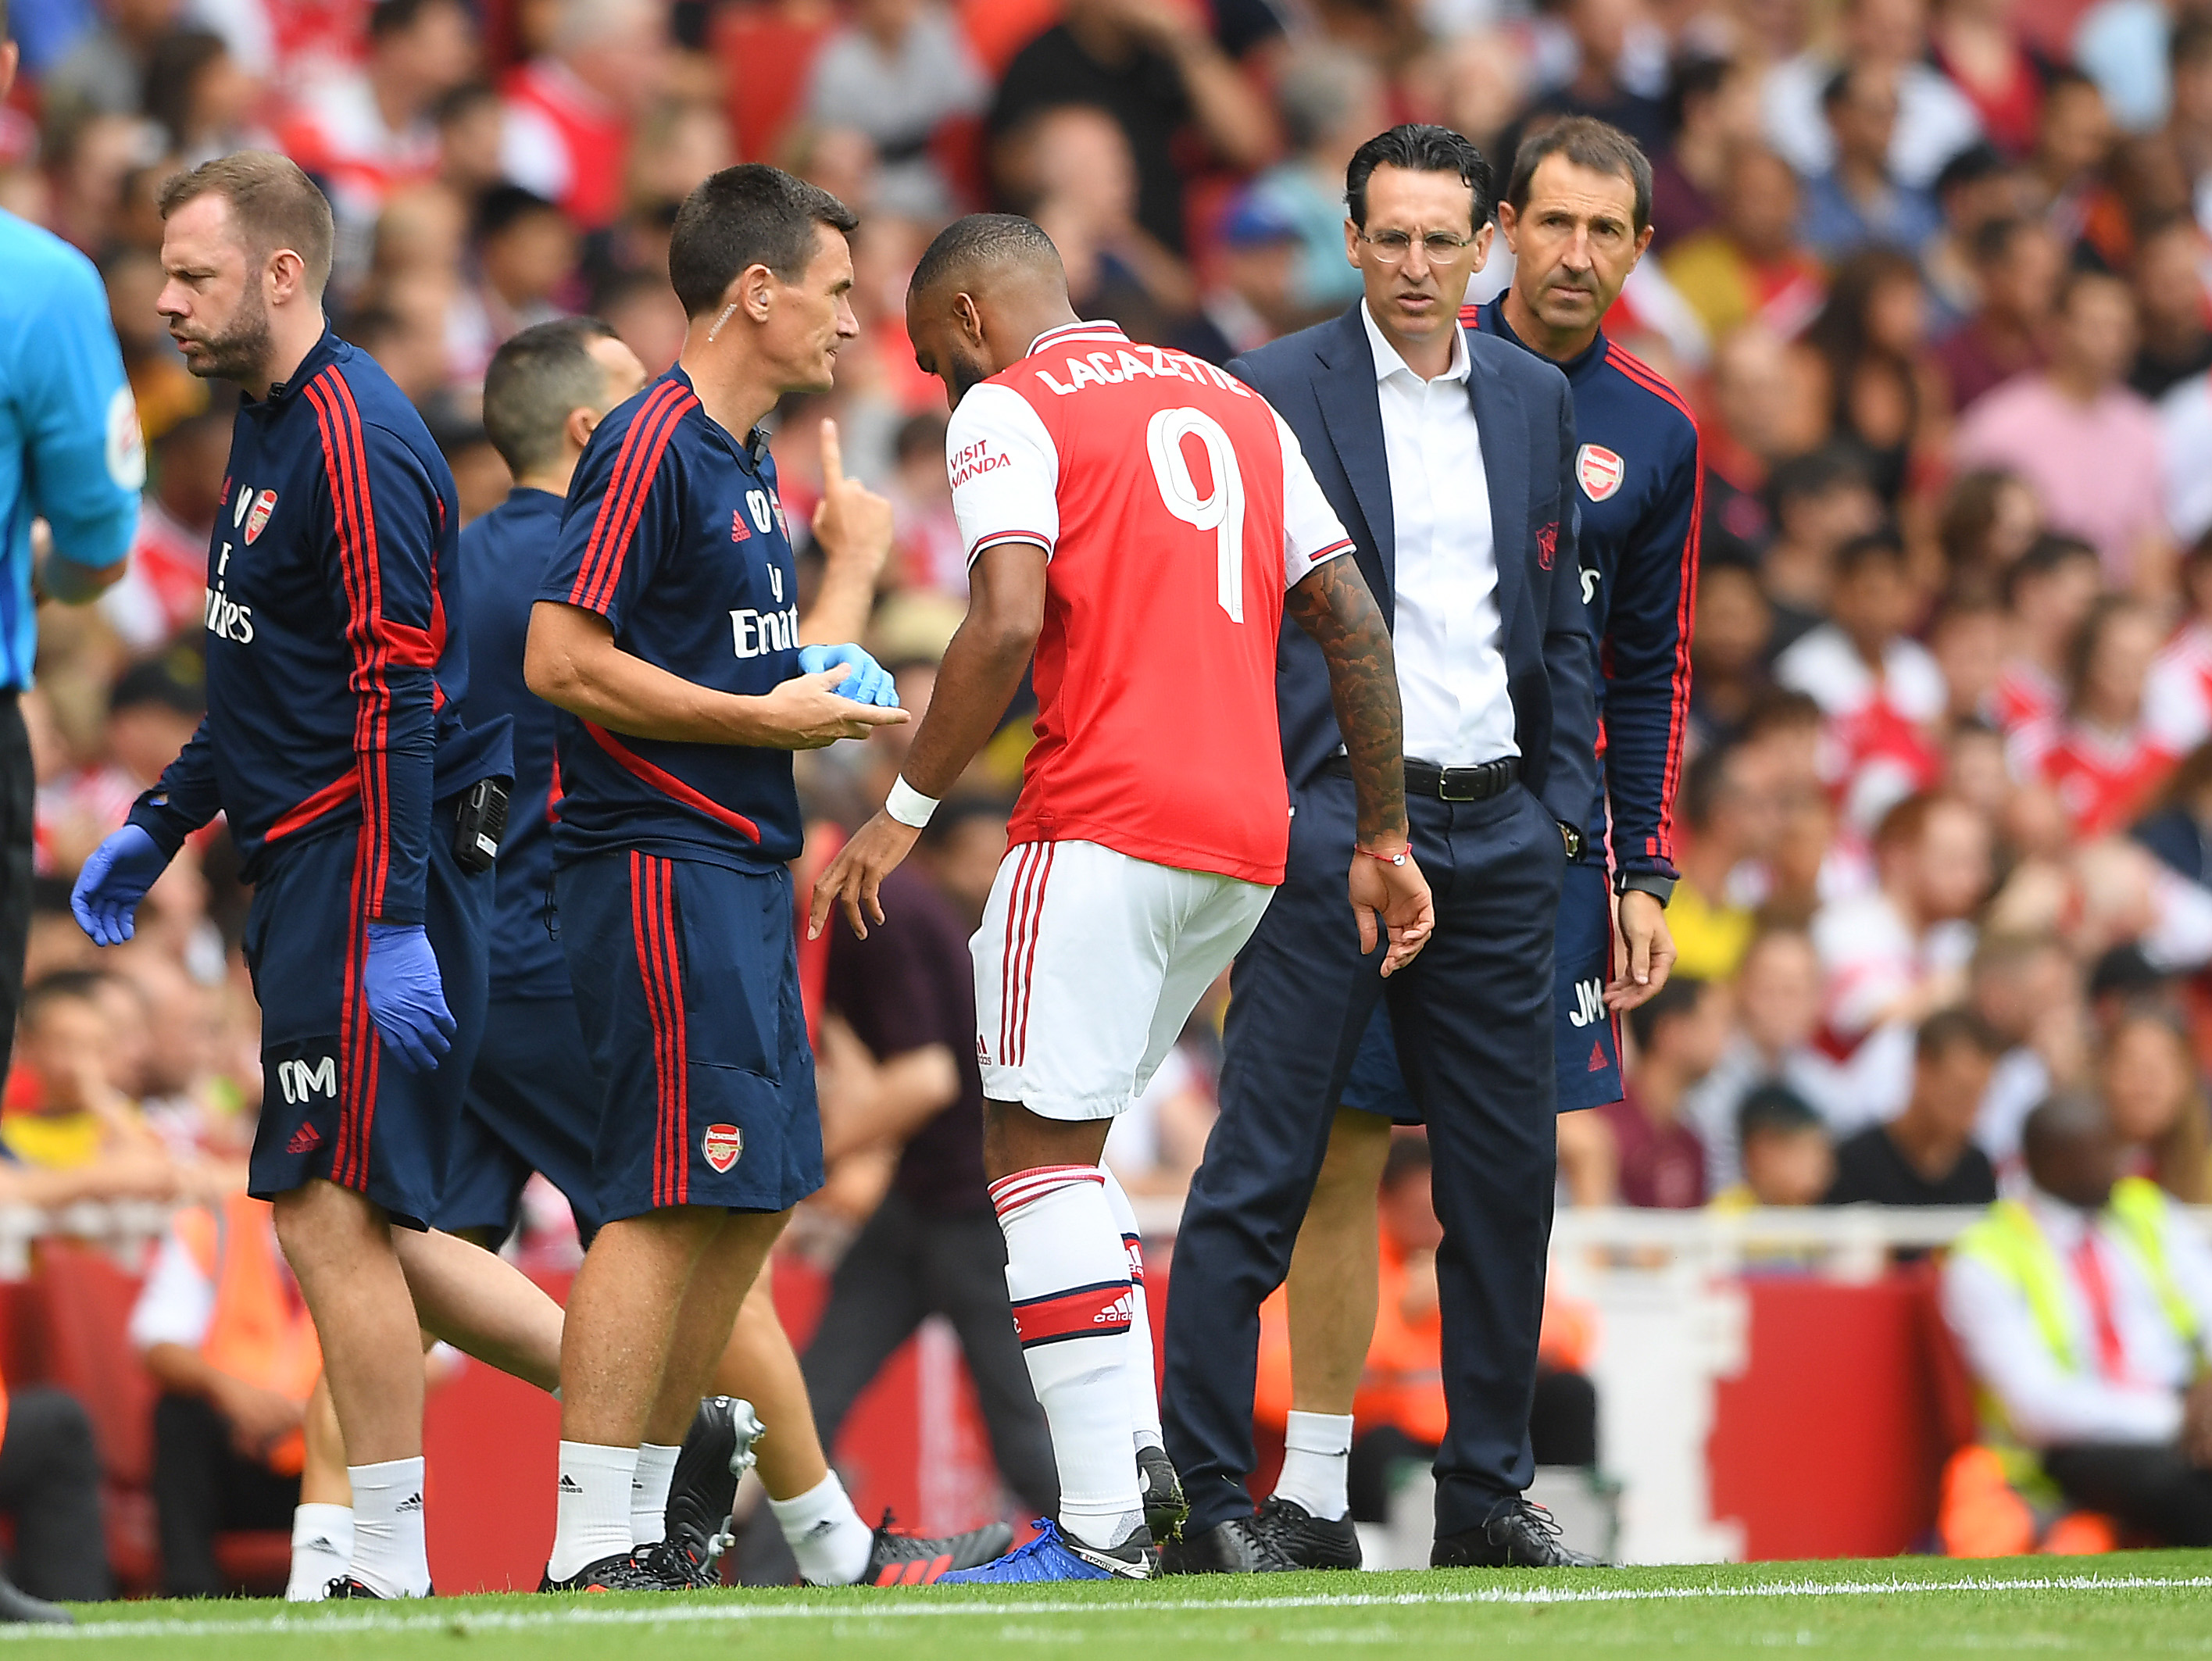 Arsenal F Alexandre Lacazette goes off injured during the Emirates Cup match between Arsenal and Olympique Lyonnais as Manager Unai Emery looks on, Jul. 28, 2019.